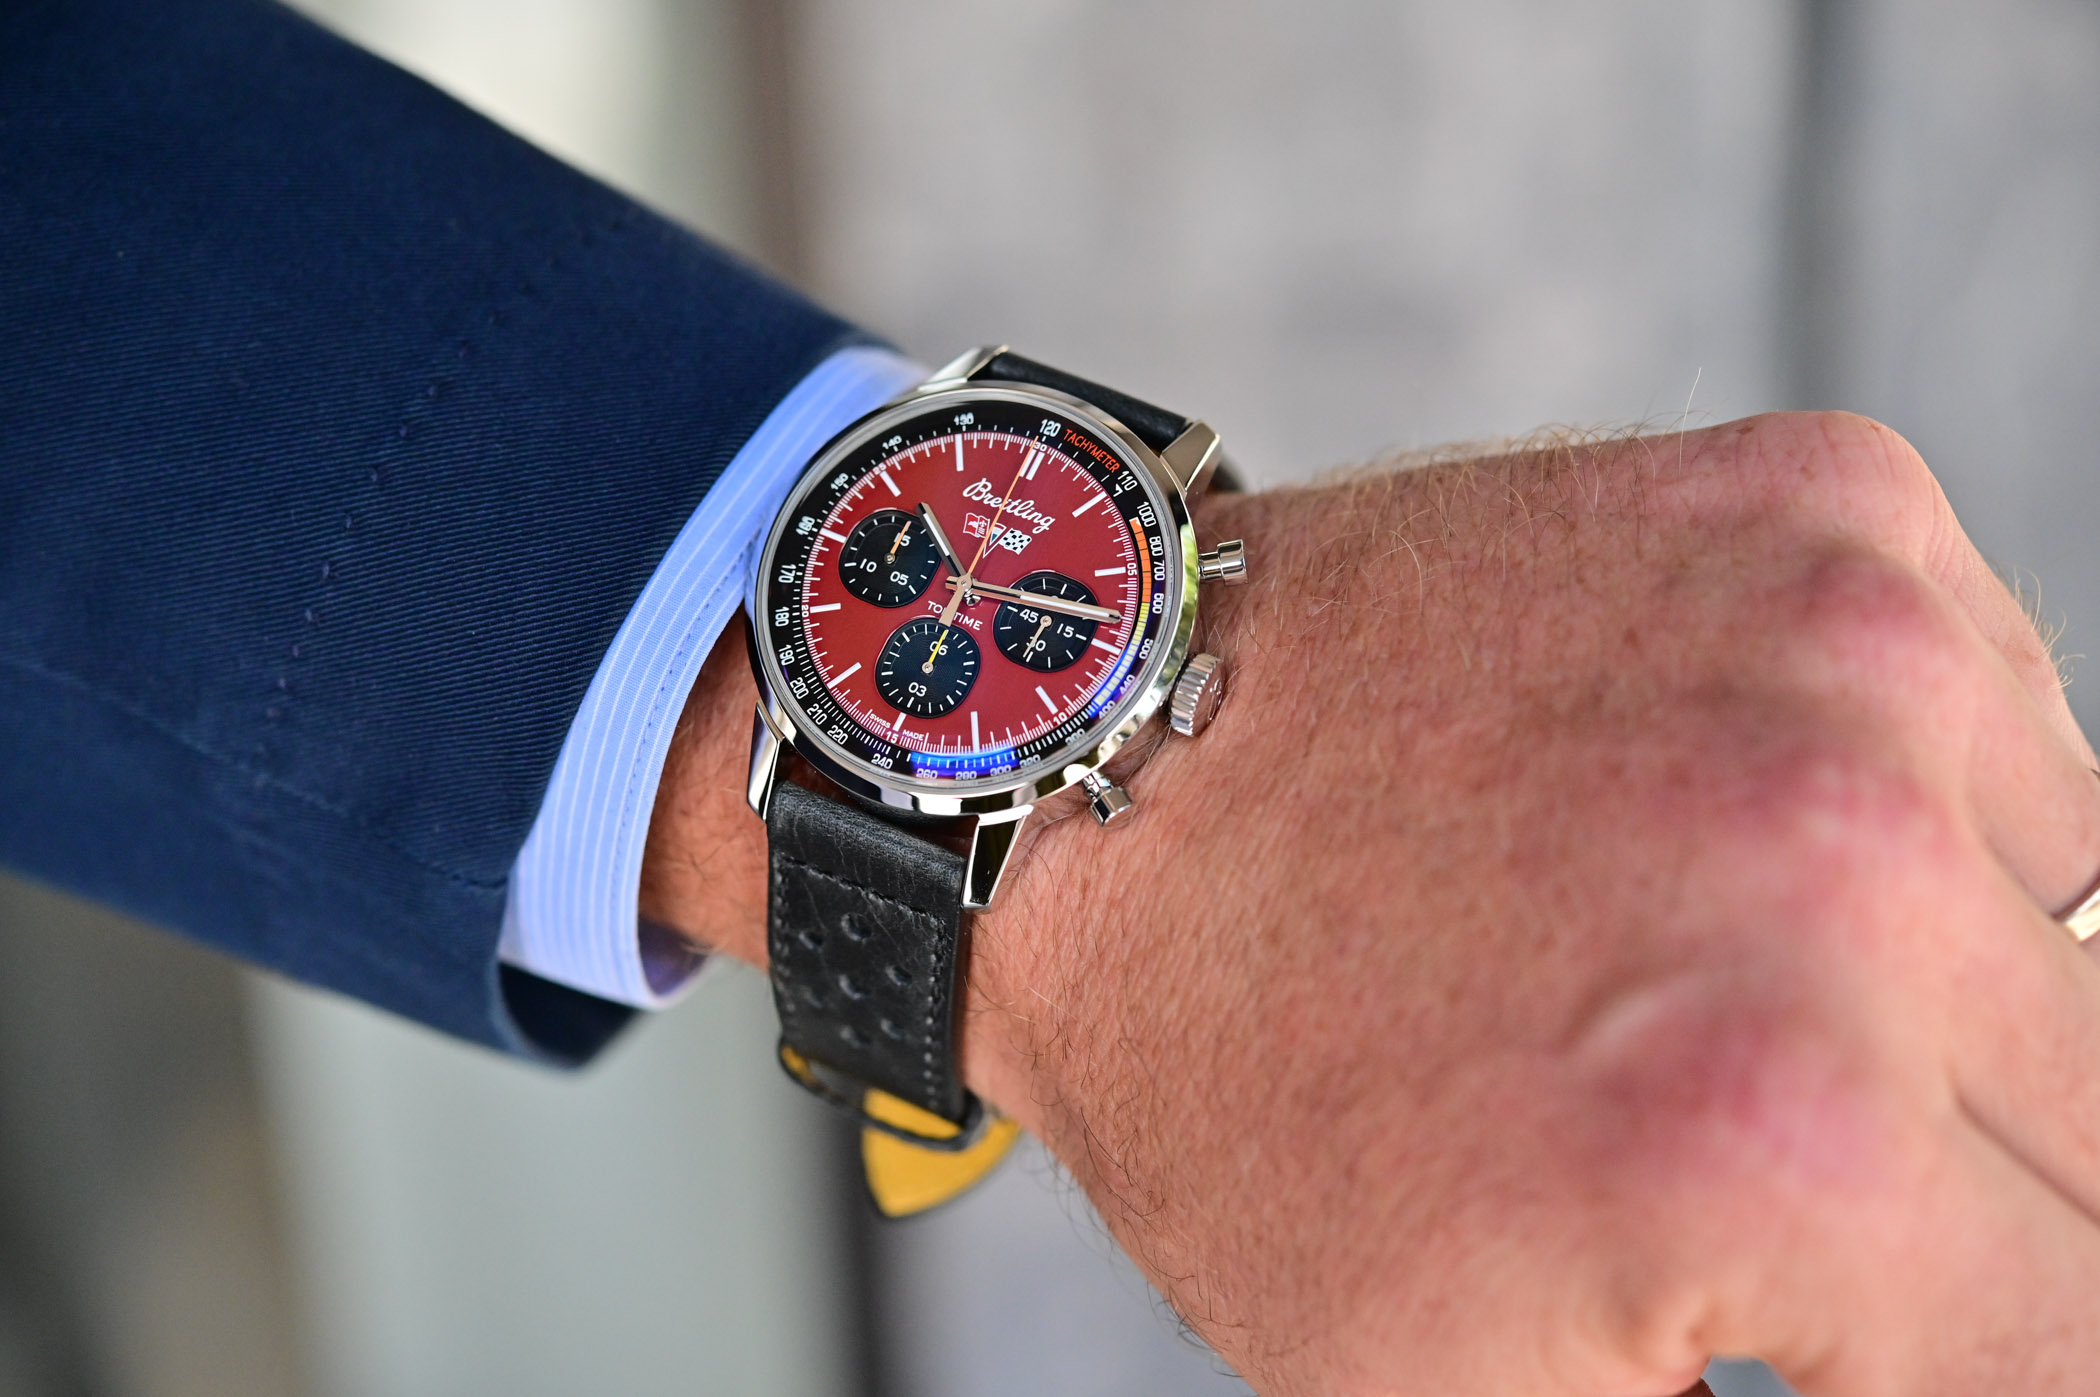 Breitling Top Time Classic Cars Capsule Collection - chevrolet corvette A25310241K1X1 - 3